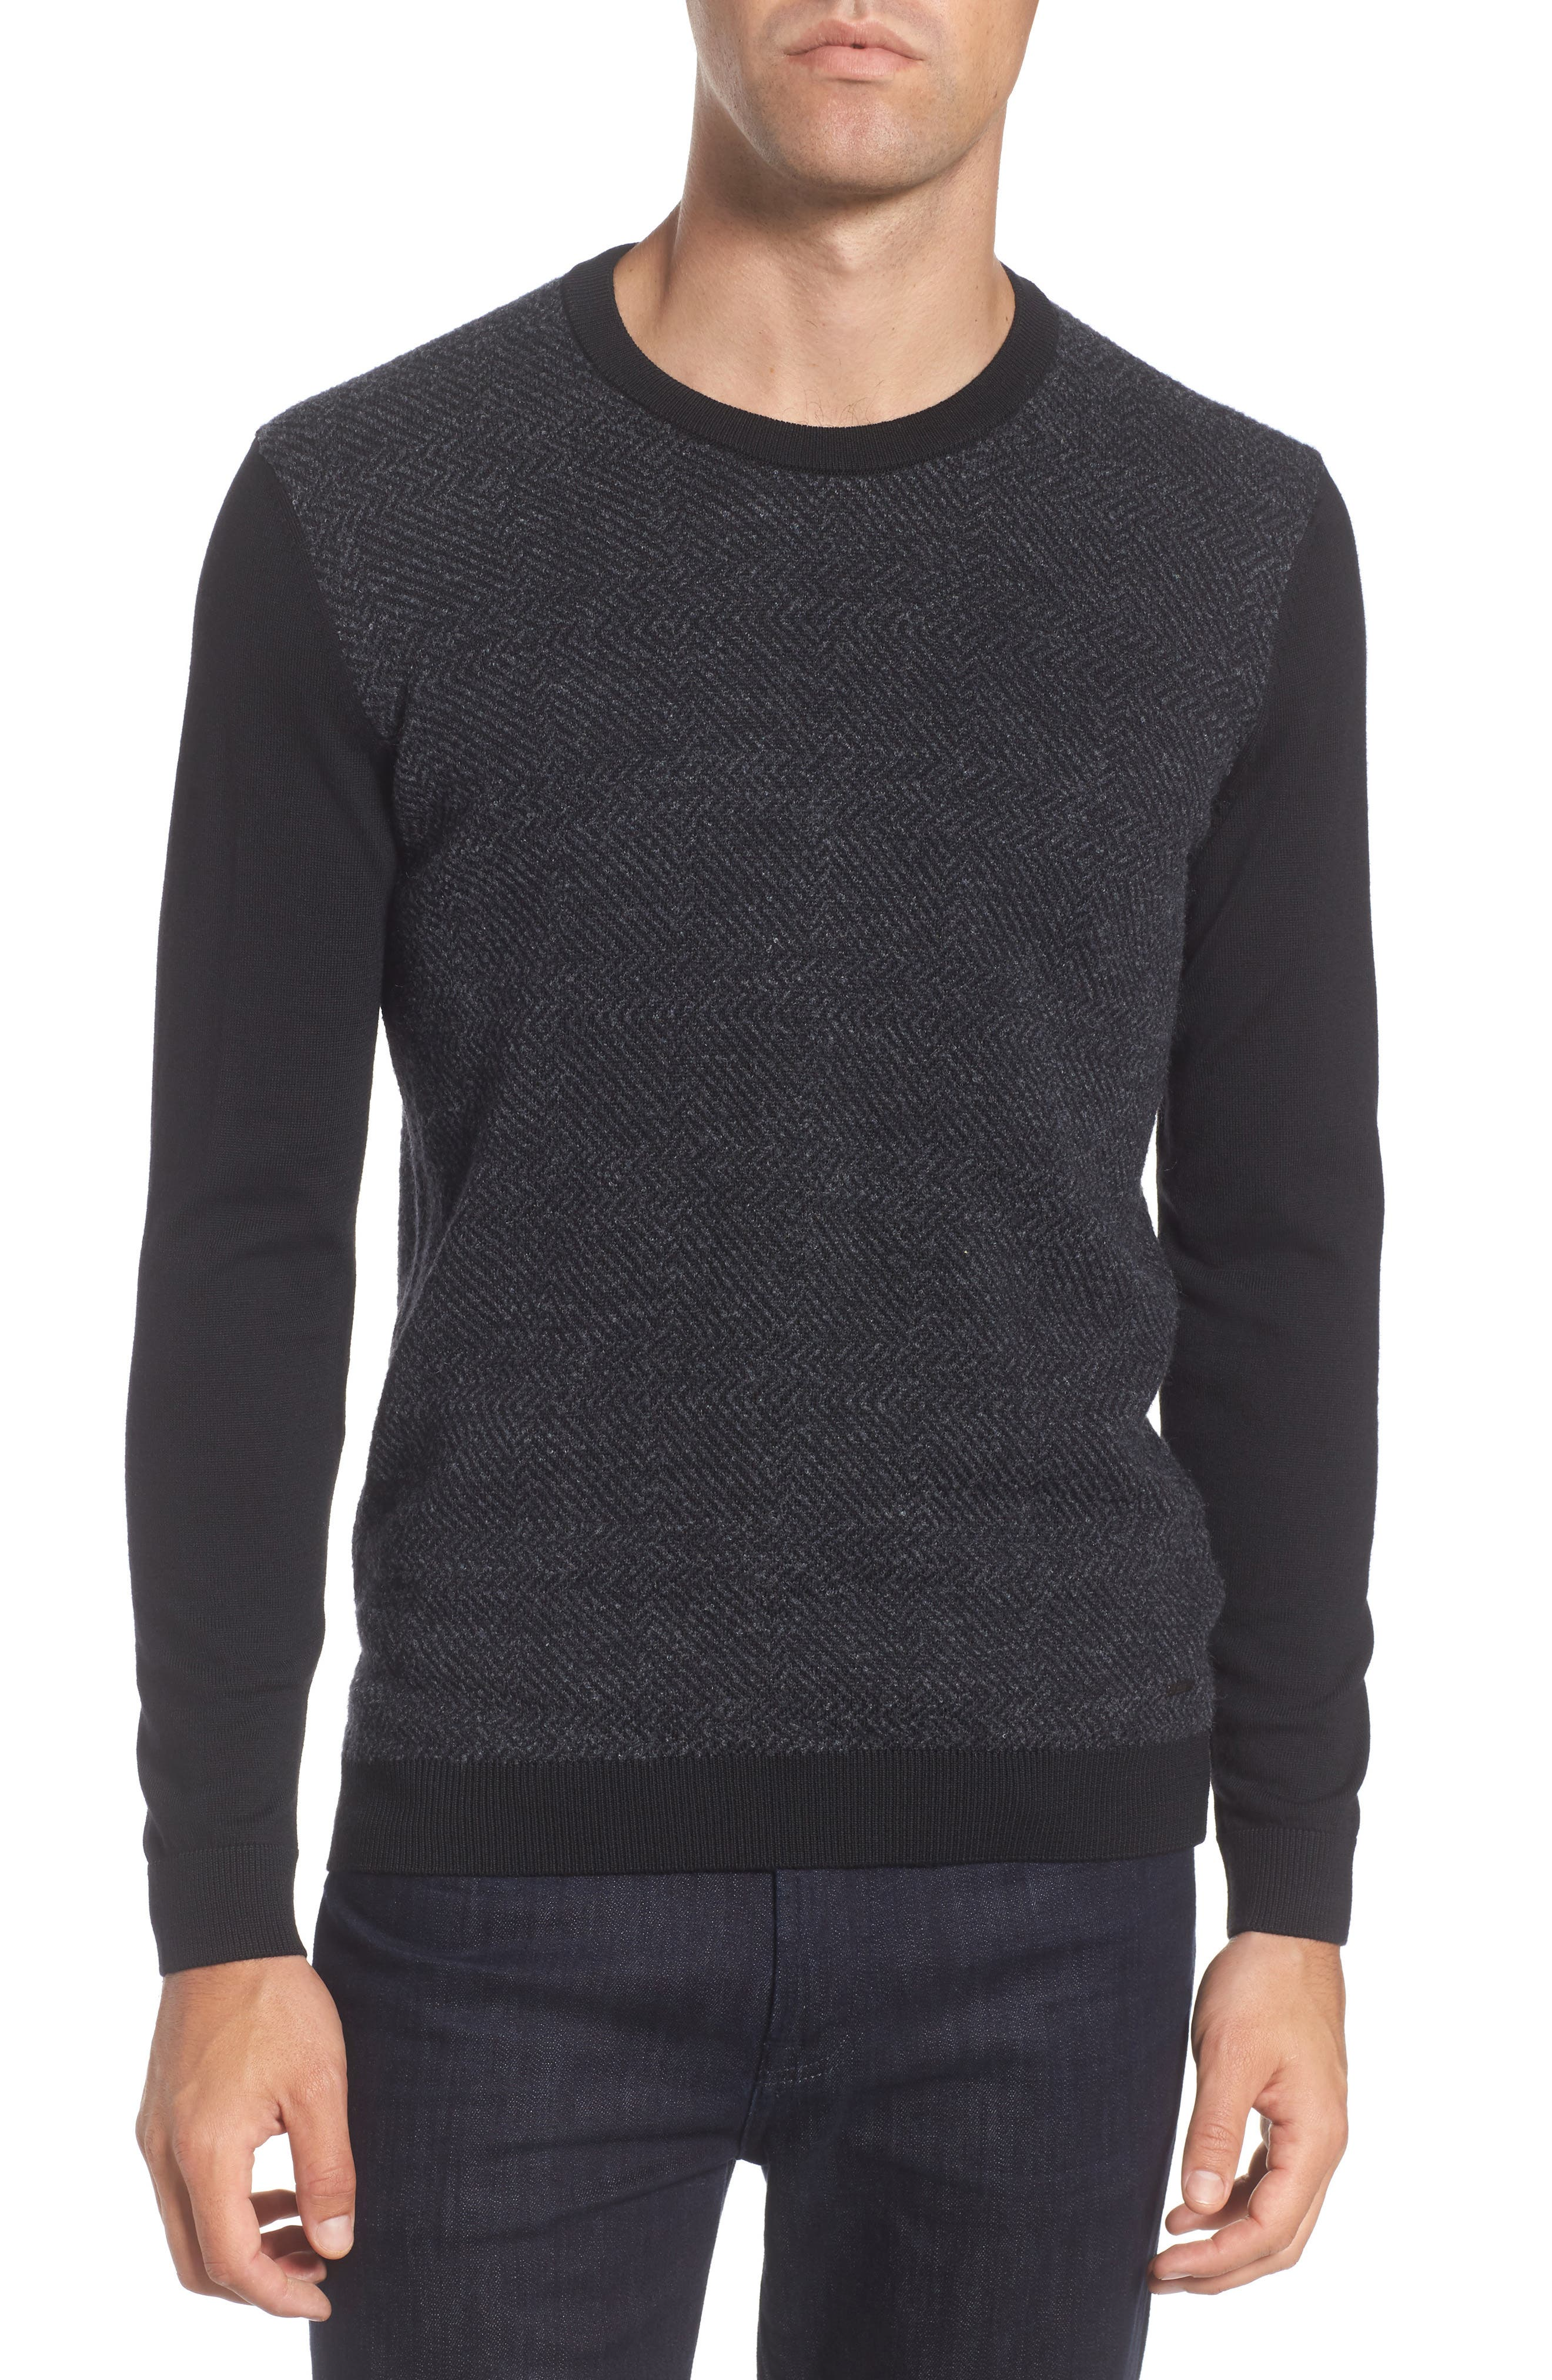 Notto Wool Blend Sweater,                             Main thumbnail 1, color,                             061